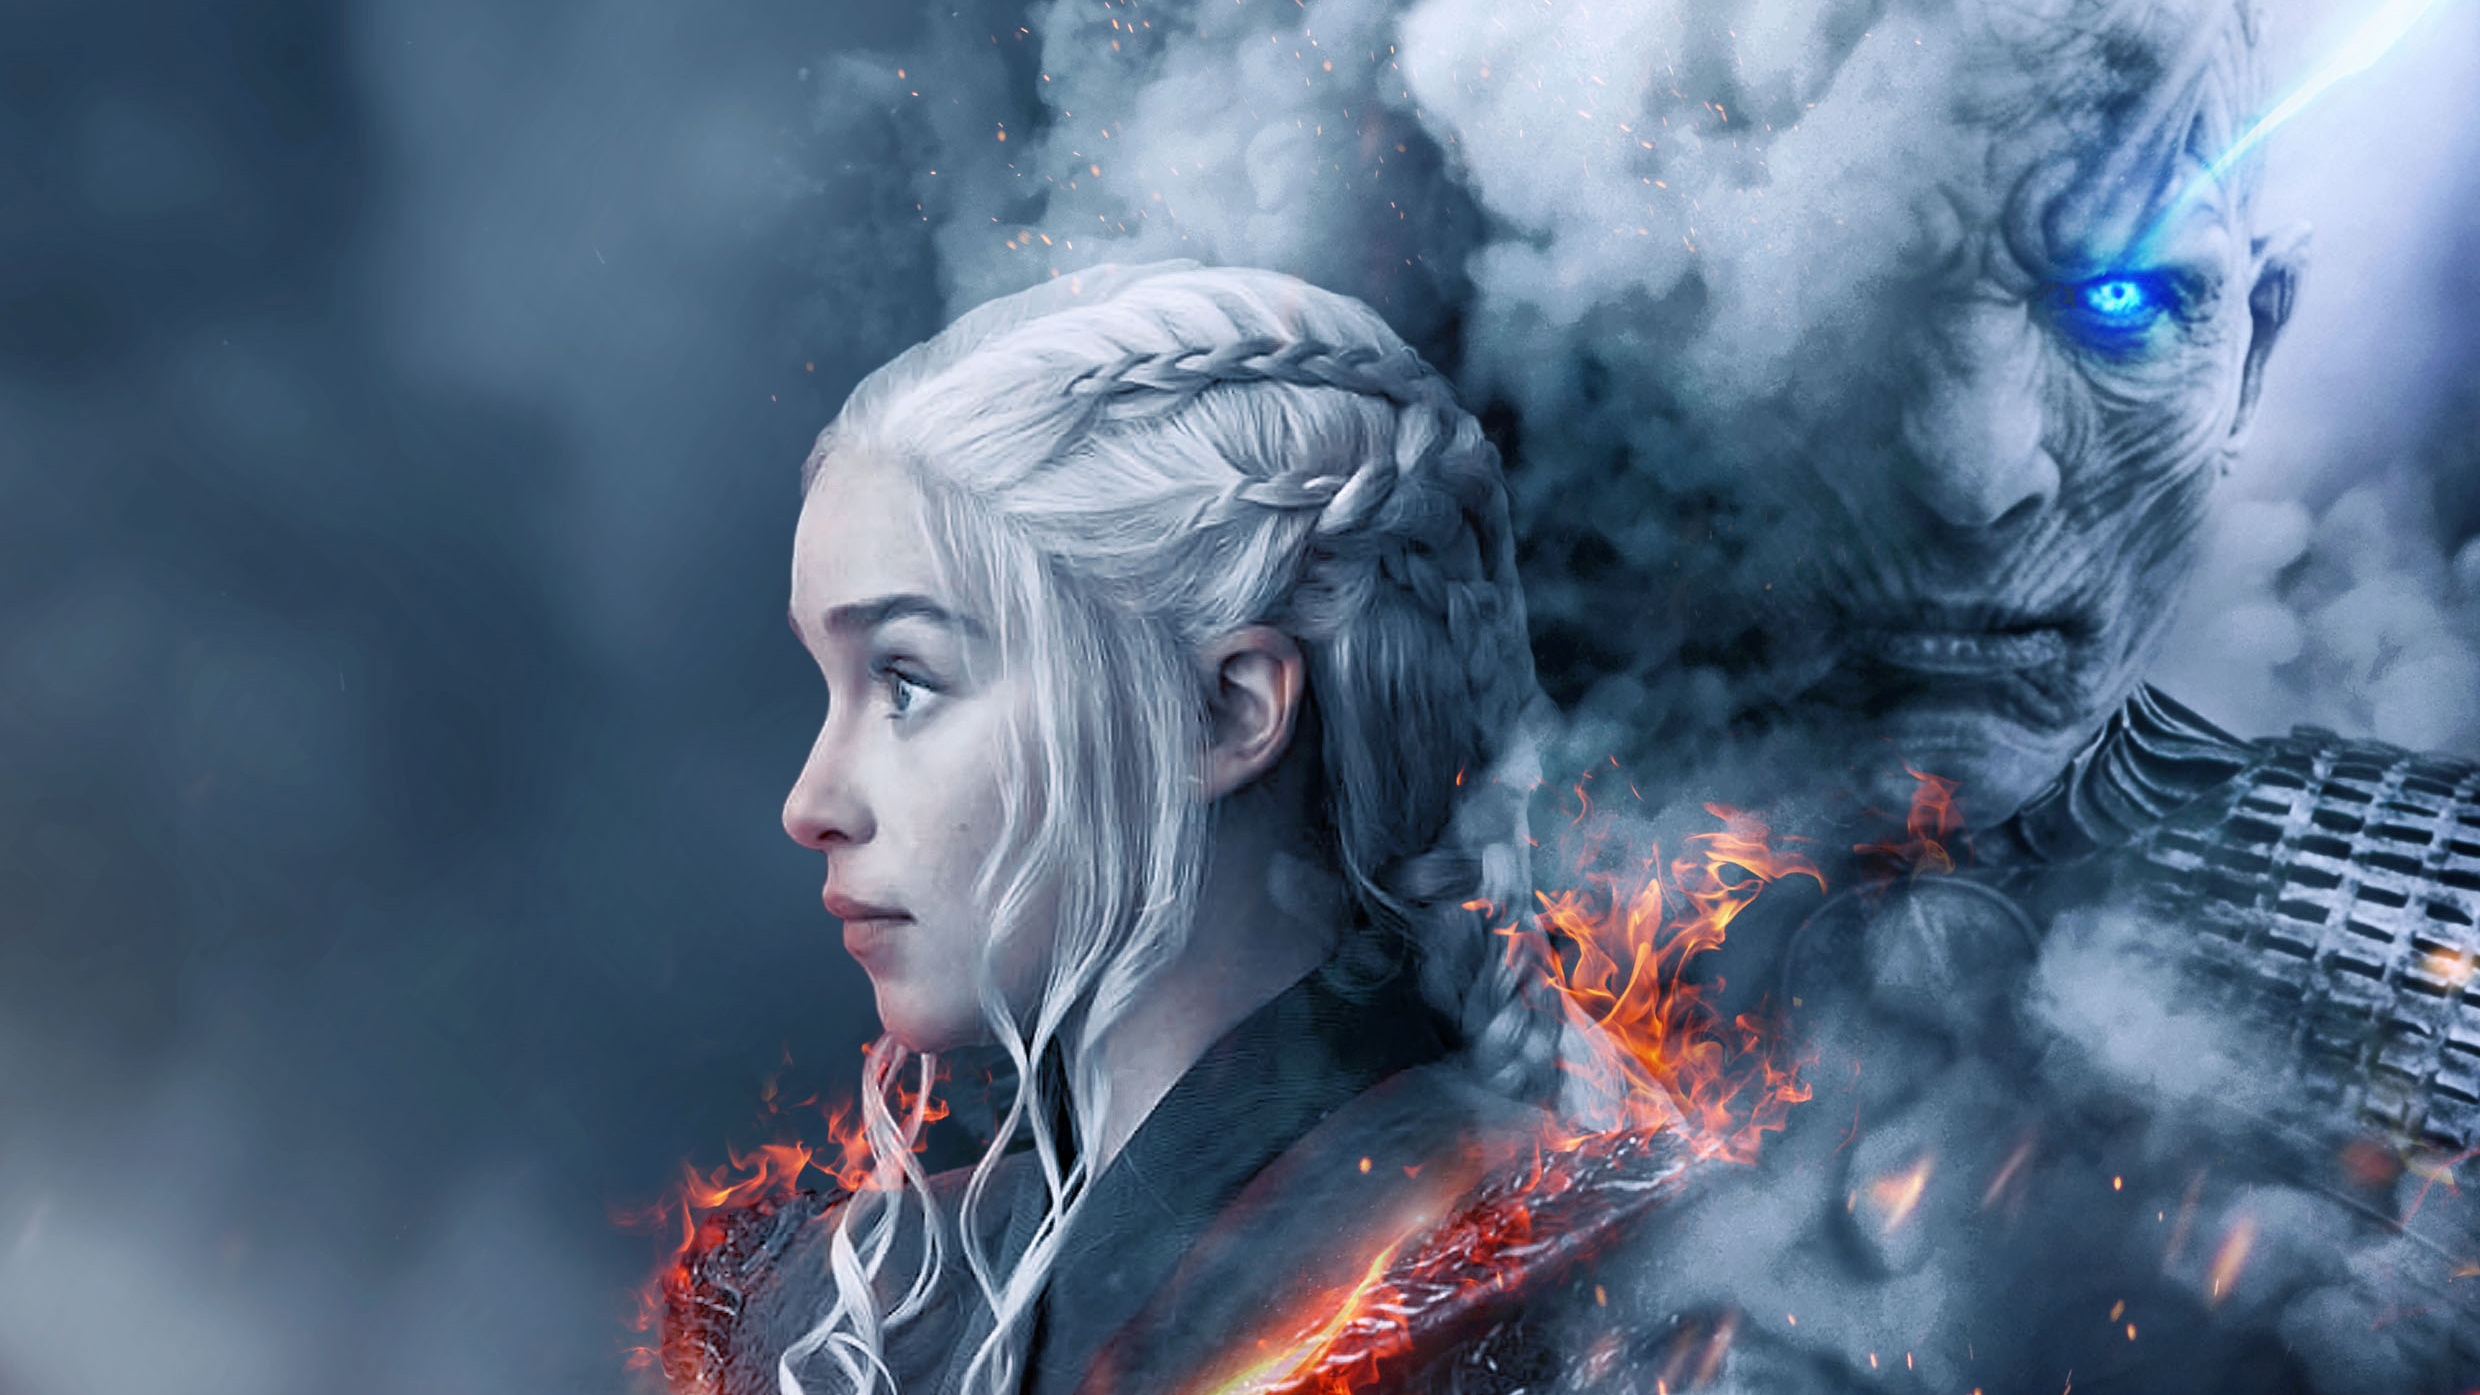 Game Of Thrones Season 8 Fan Poster, HD Tv Shows, 4k Wallpapers